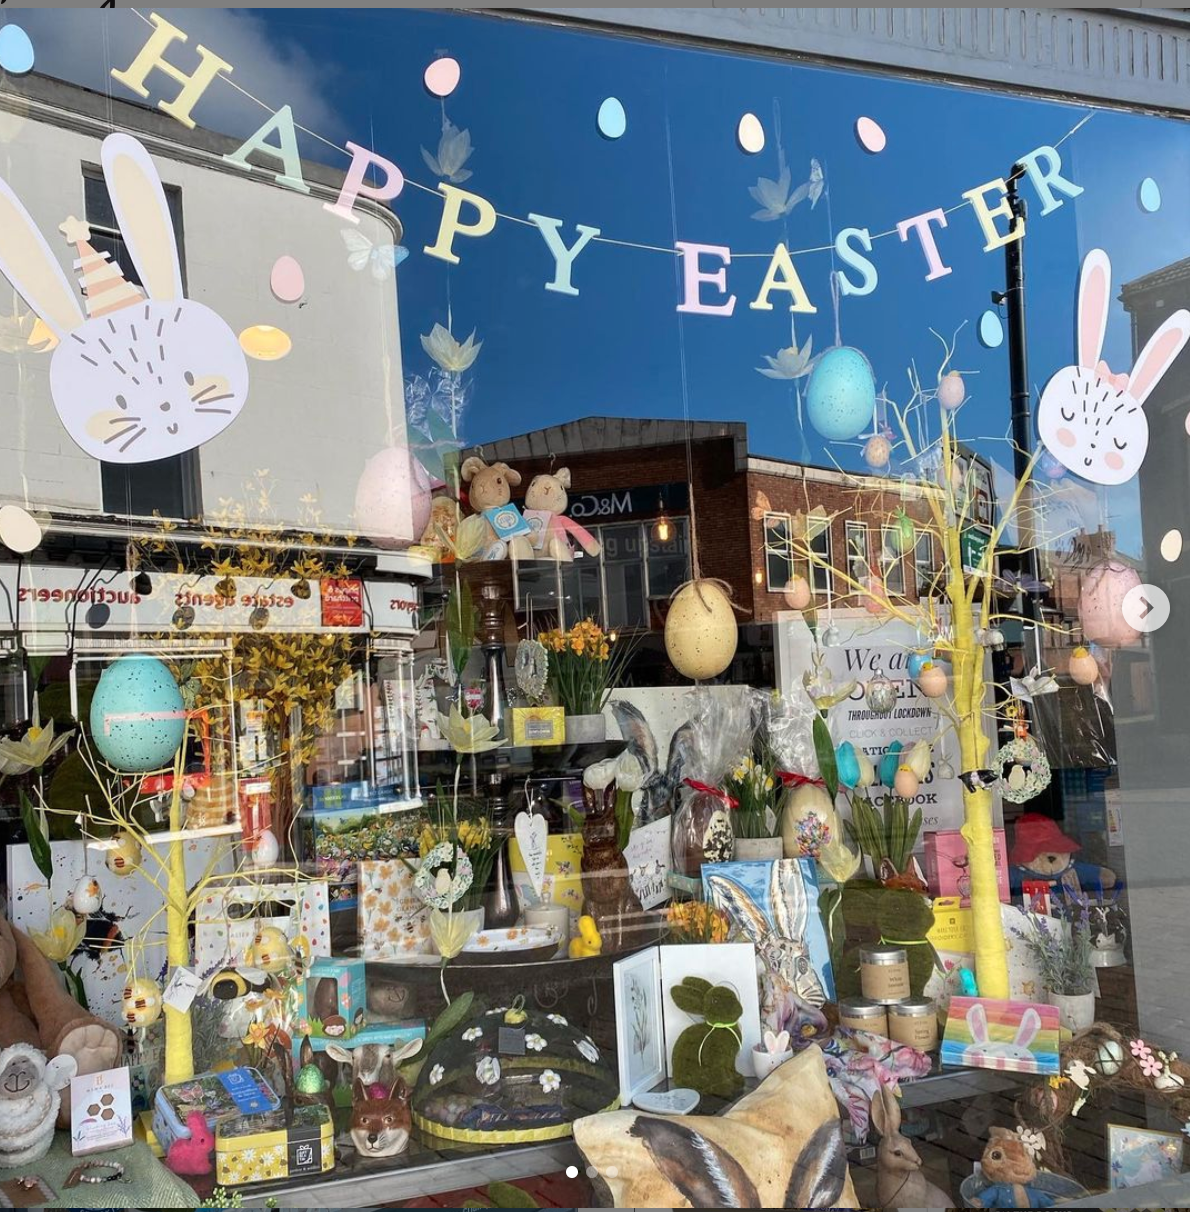 Above: A Mooch Easter window display which will drive sales from its website.